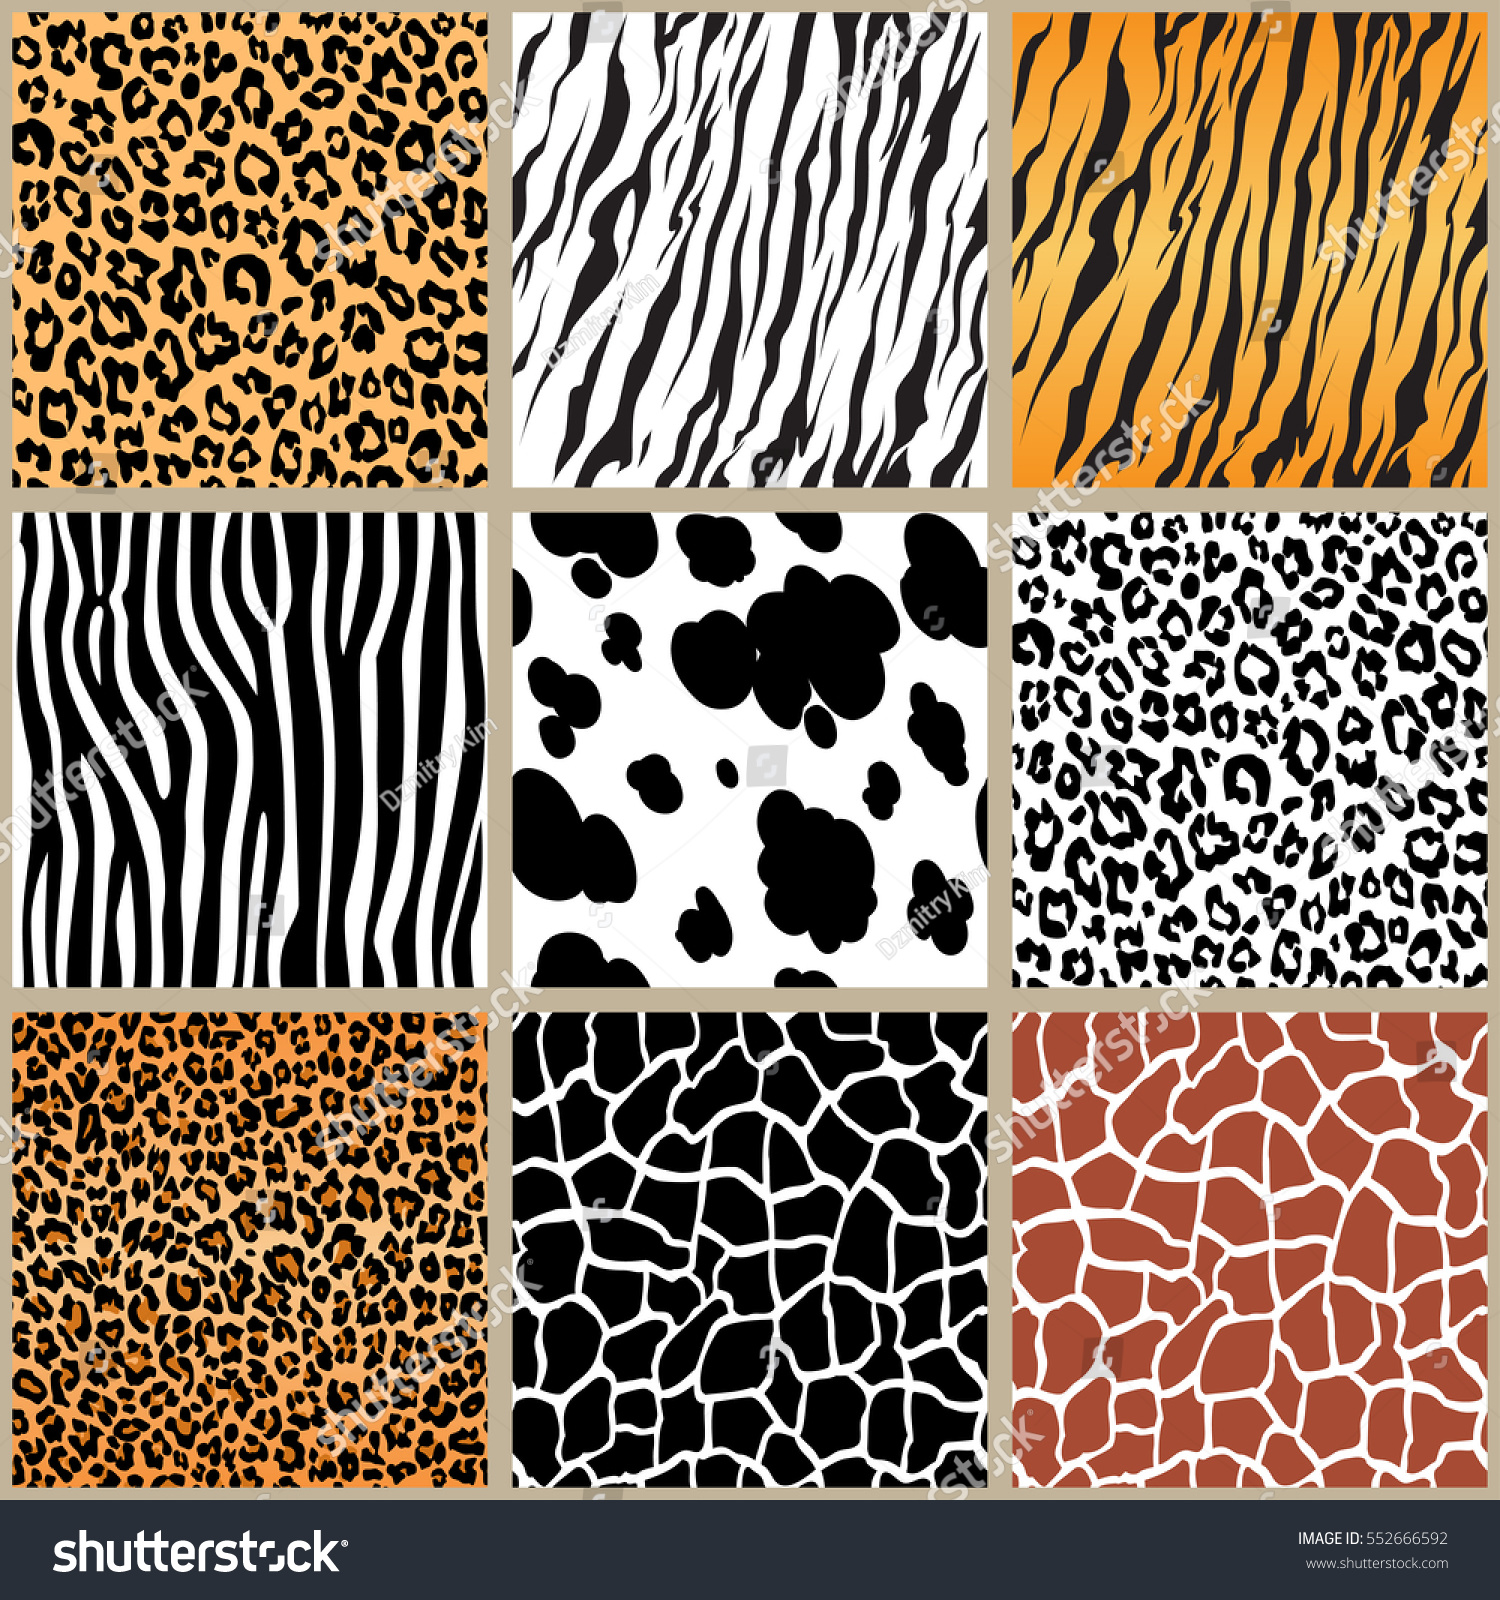 animal skin patterns seamless - photo #14